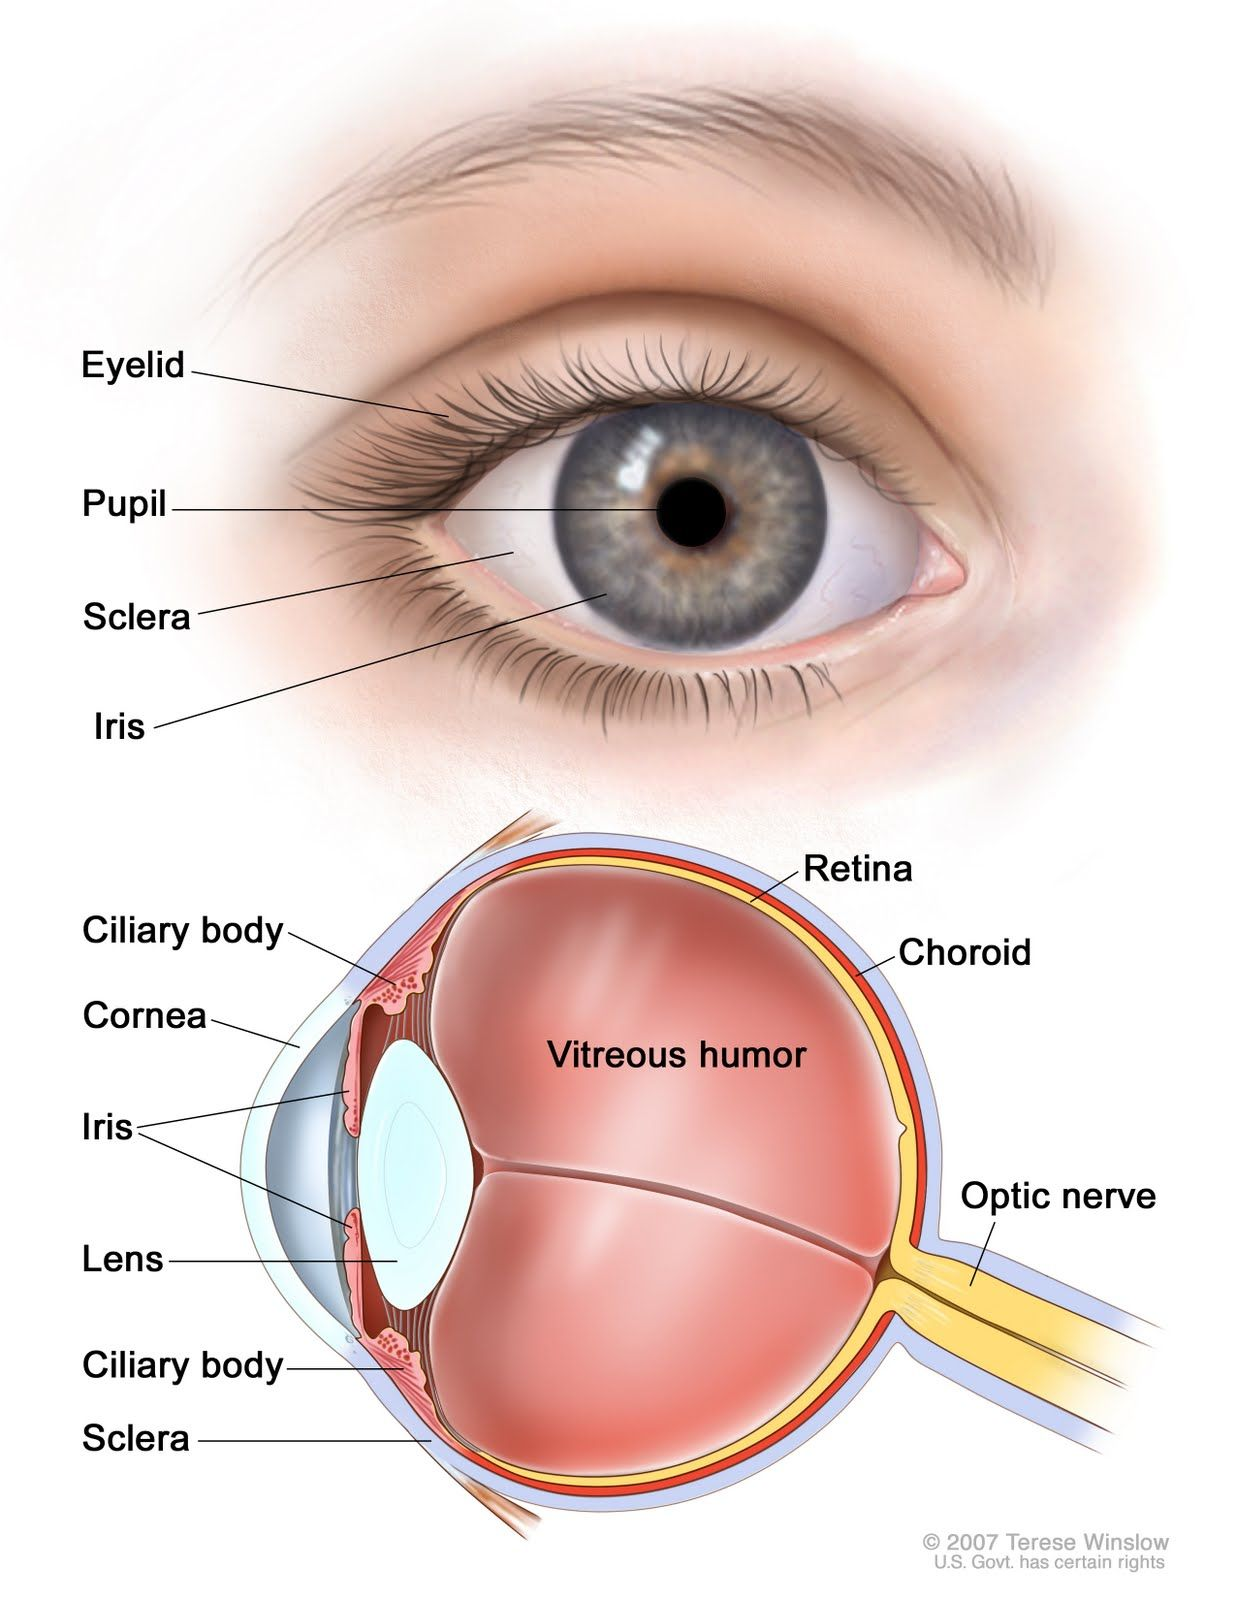 Parts Of The Eyelid Diagram White Rodgers 1361 Zone Valve Wiring Eye Eyes Chart Teaching Stuff Pinterest Anatomy